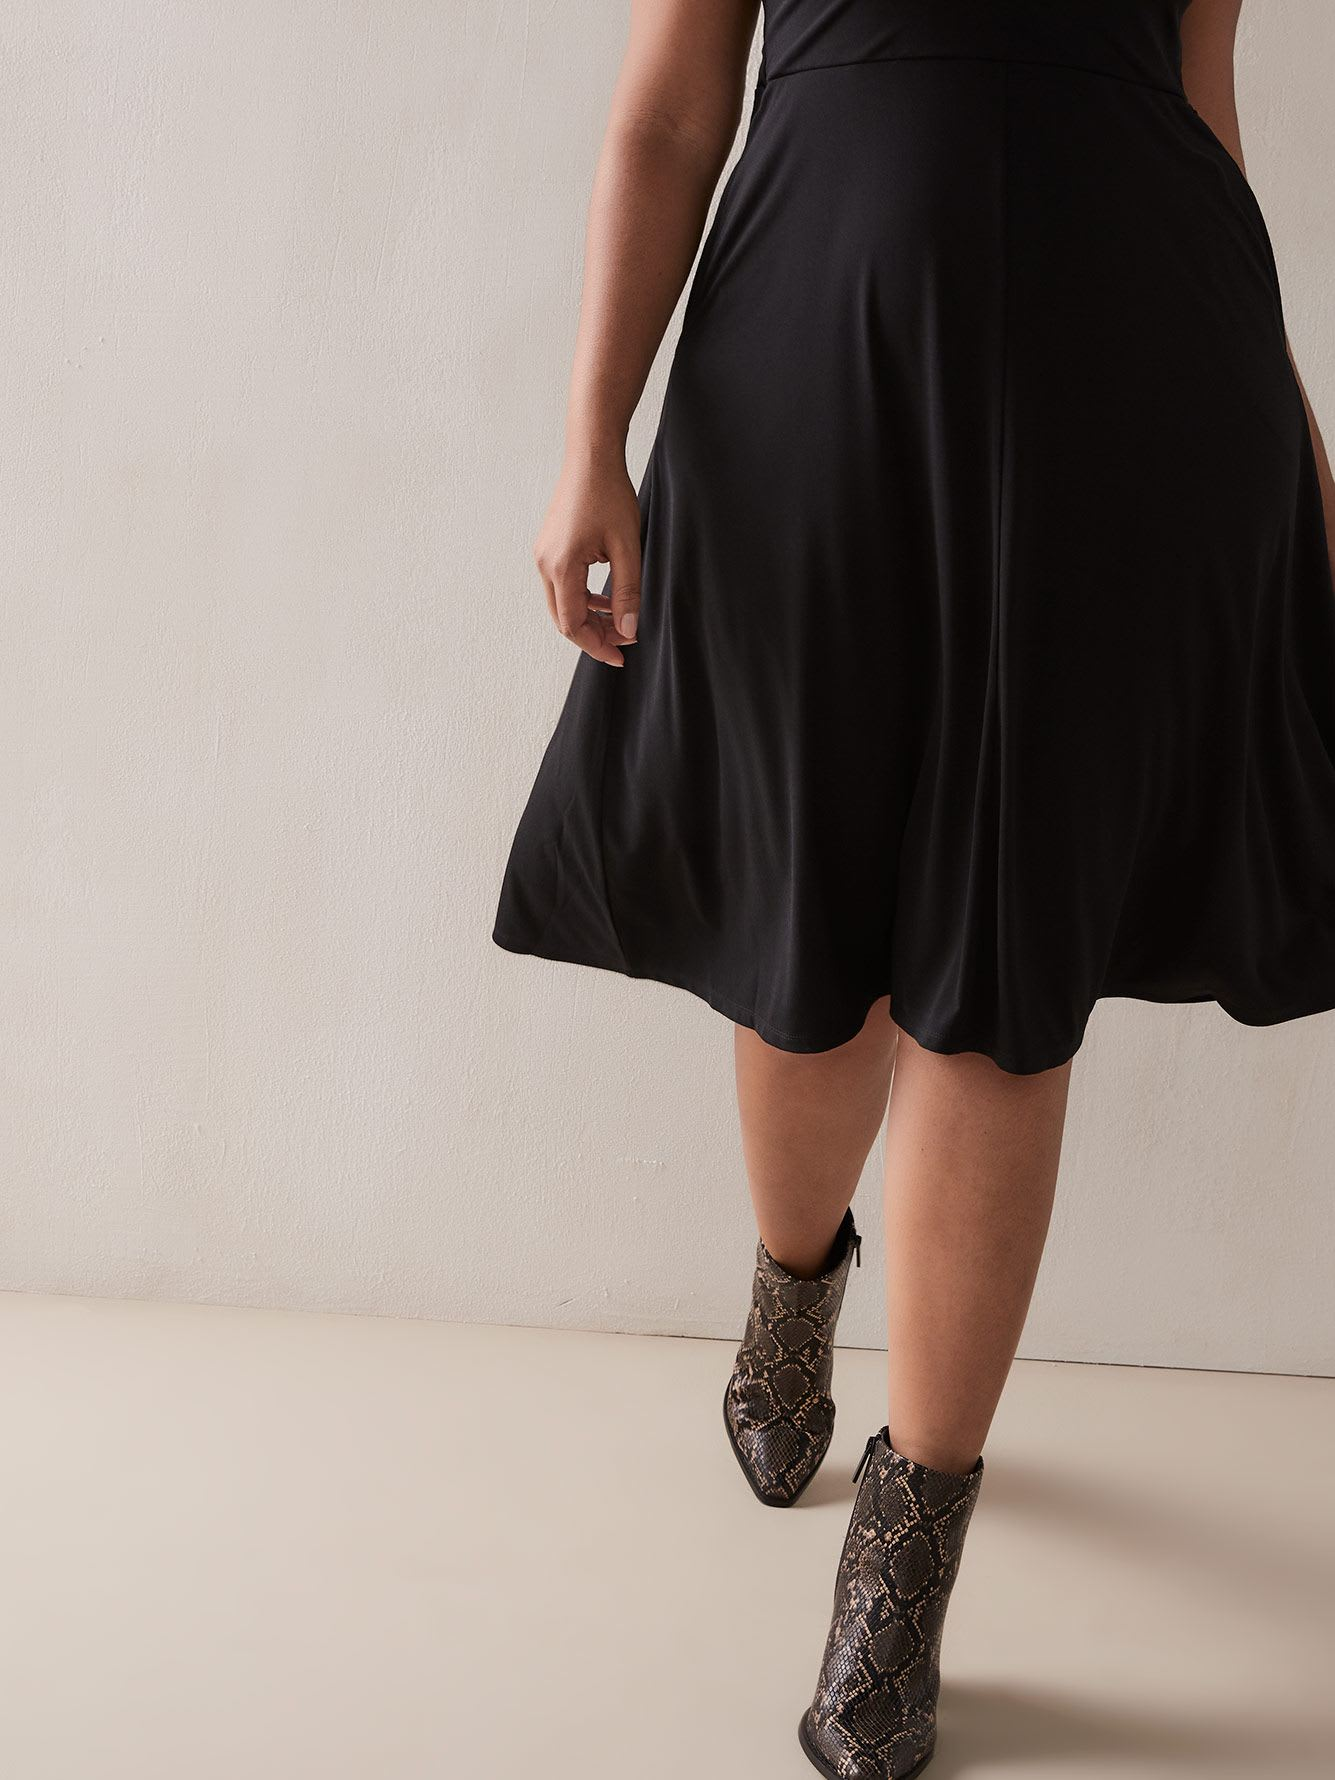 Sleeveless Fit & Flare Dress with Pockets